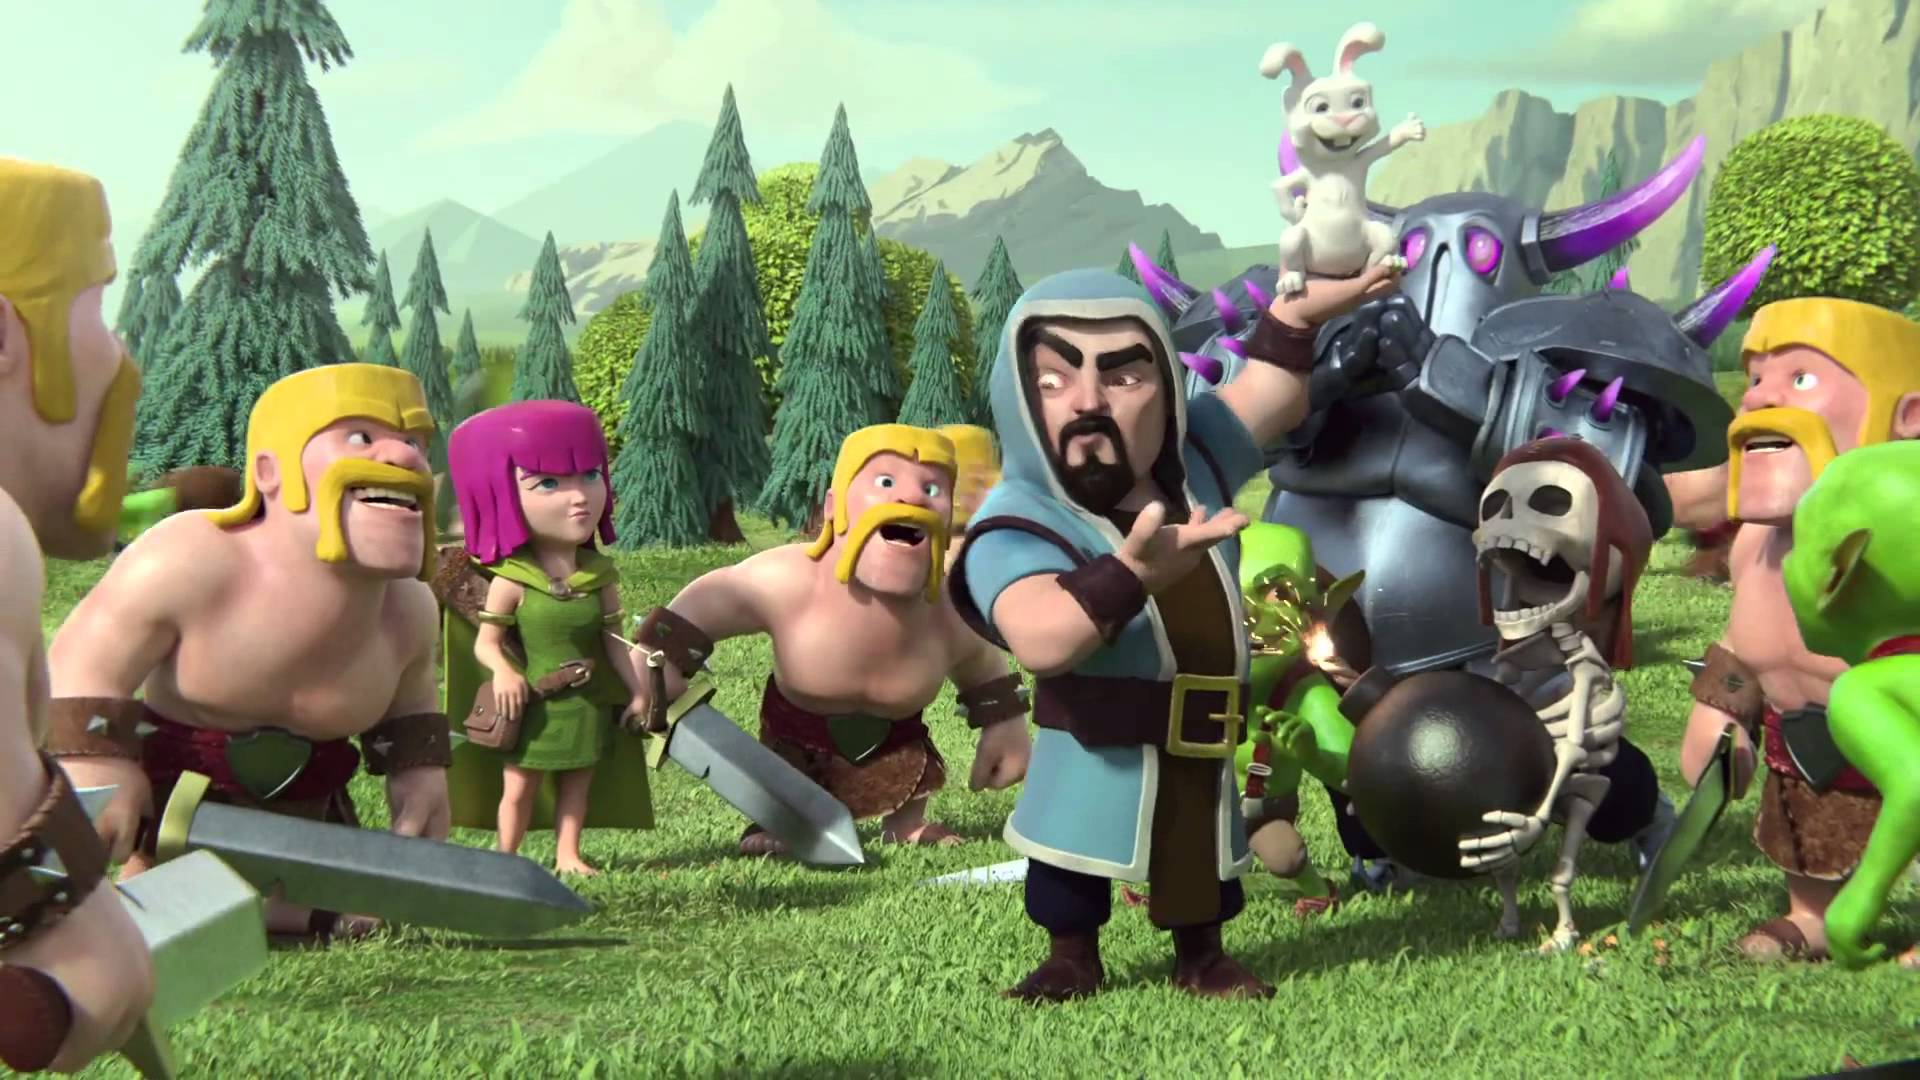 Best Wizard Wallpapers Clash of Clans 1920x1080